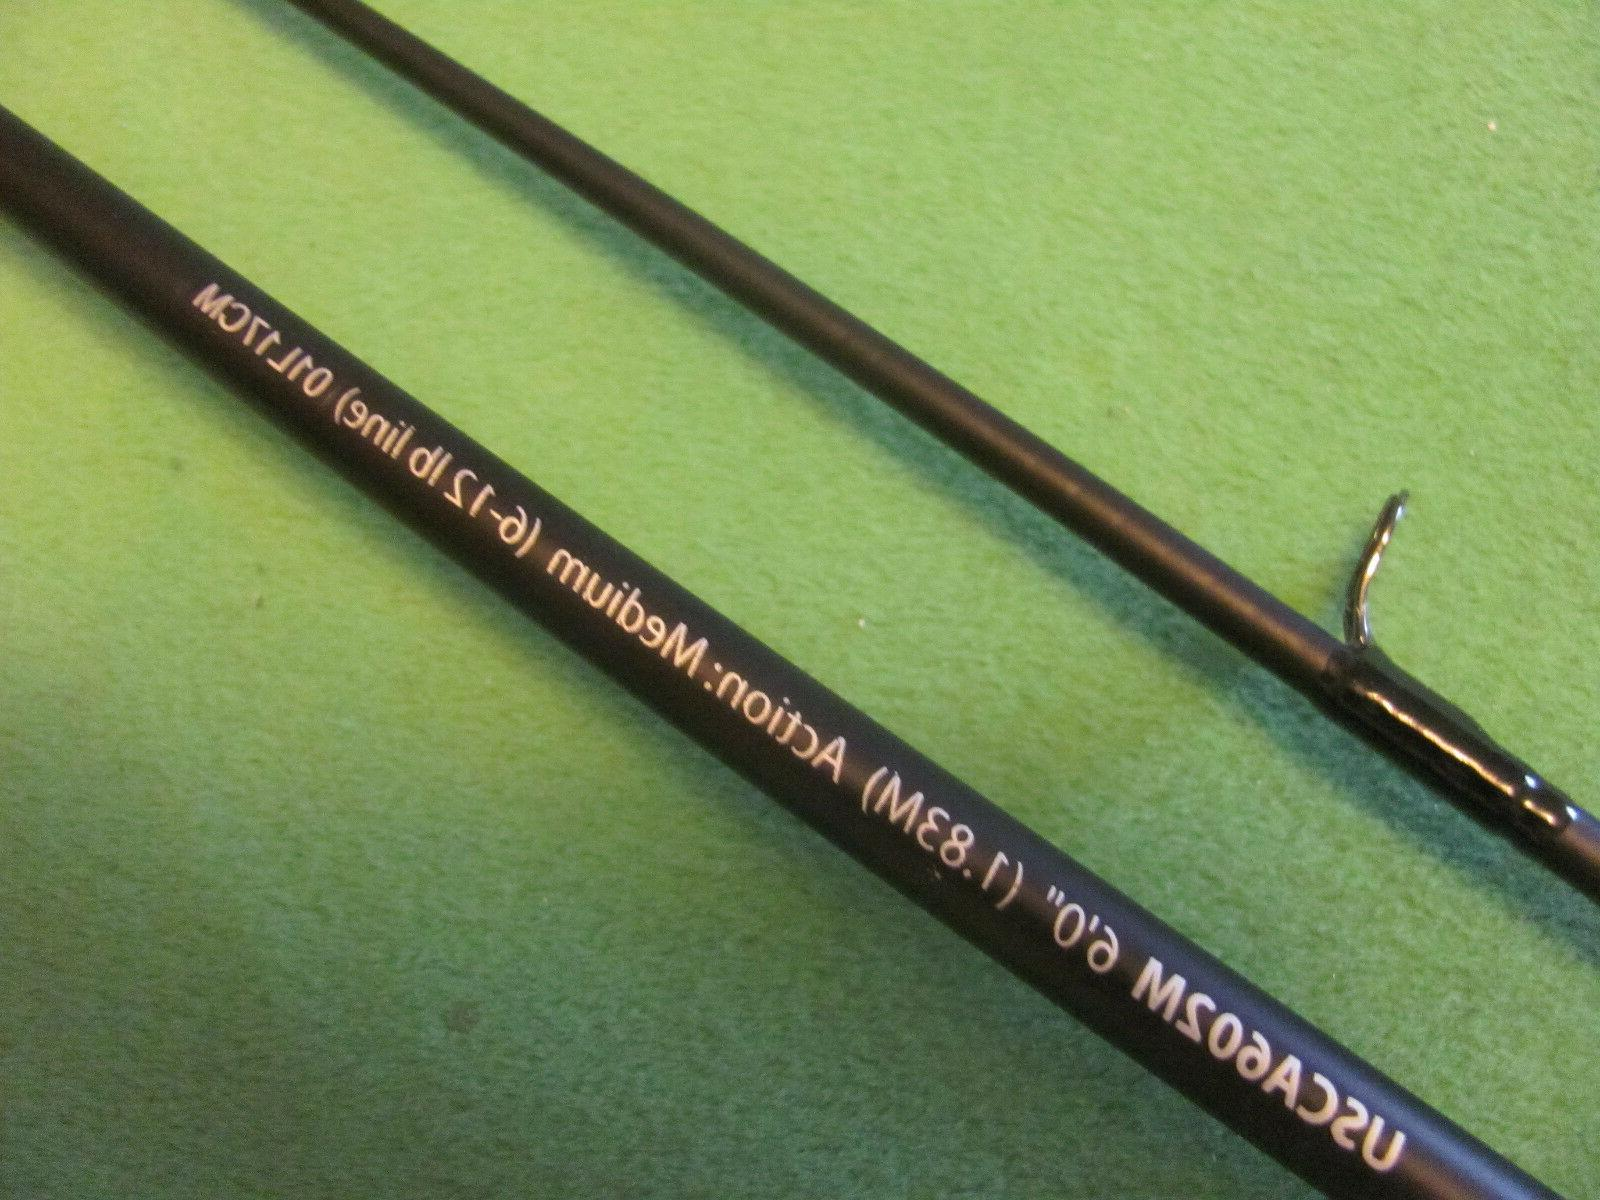 SHAKESPEARE UGLY STIK GX2 6' CASTING & COMBO NEW!.